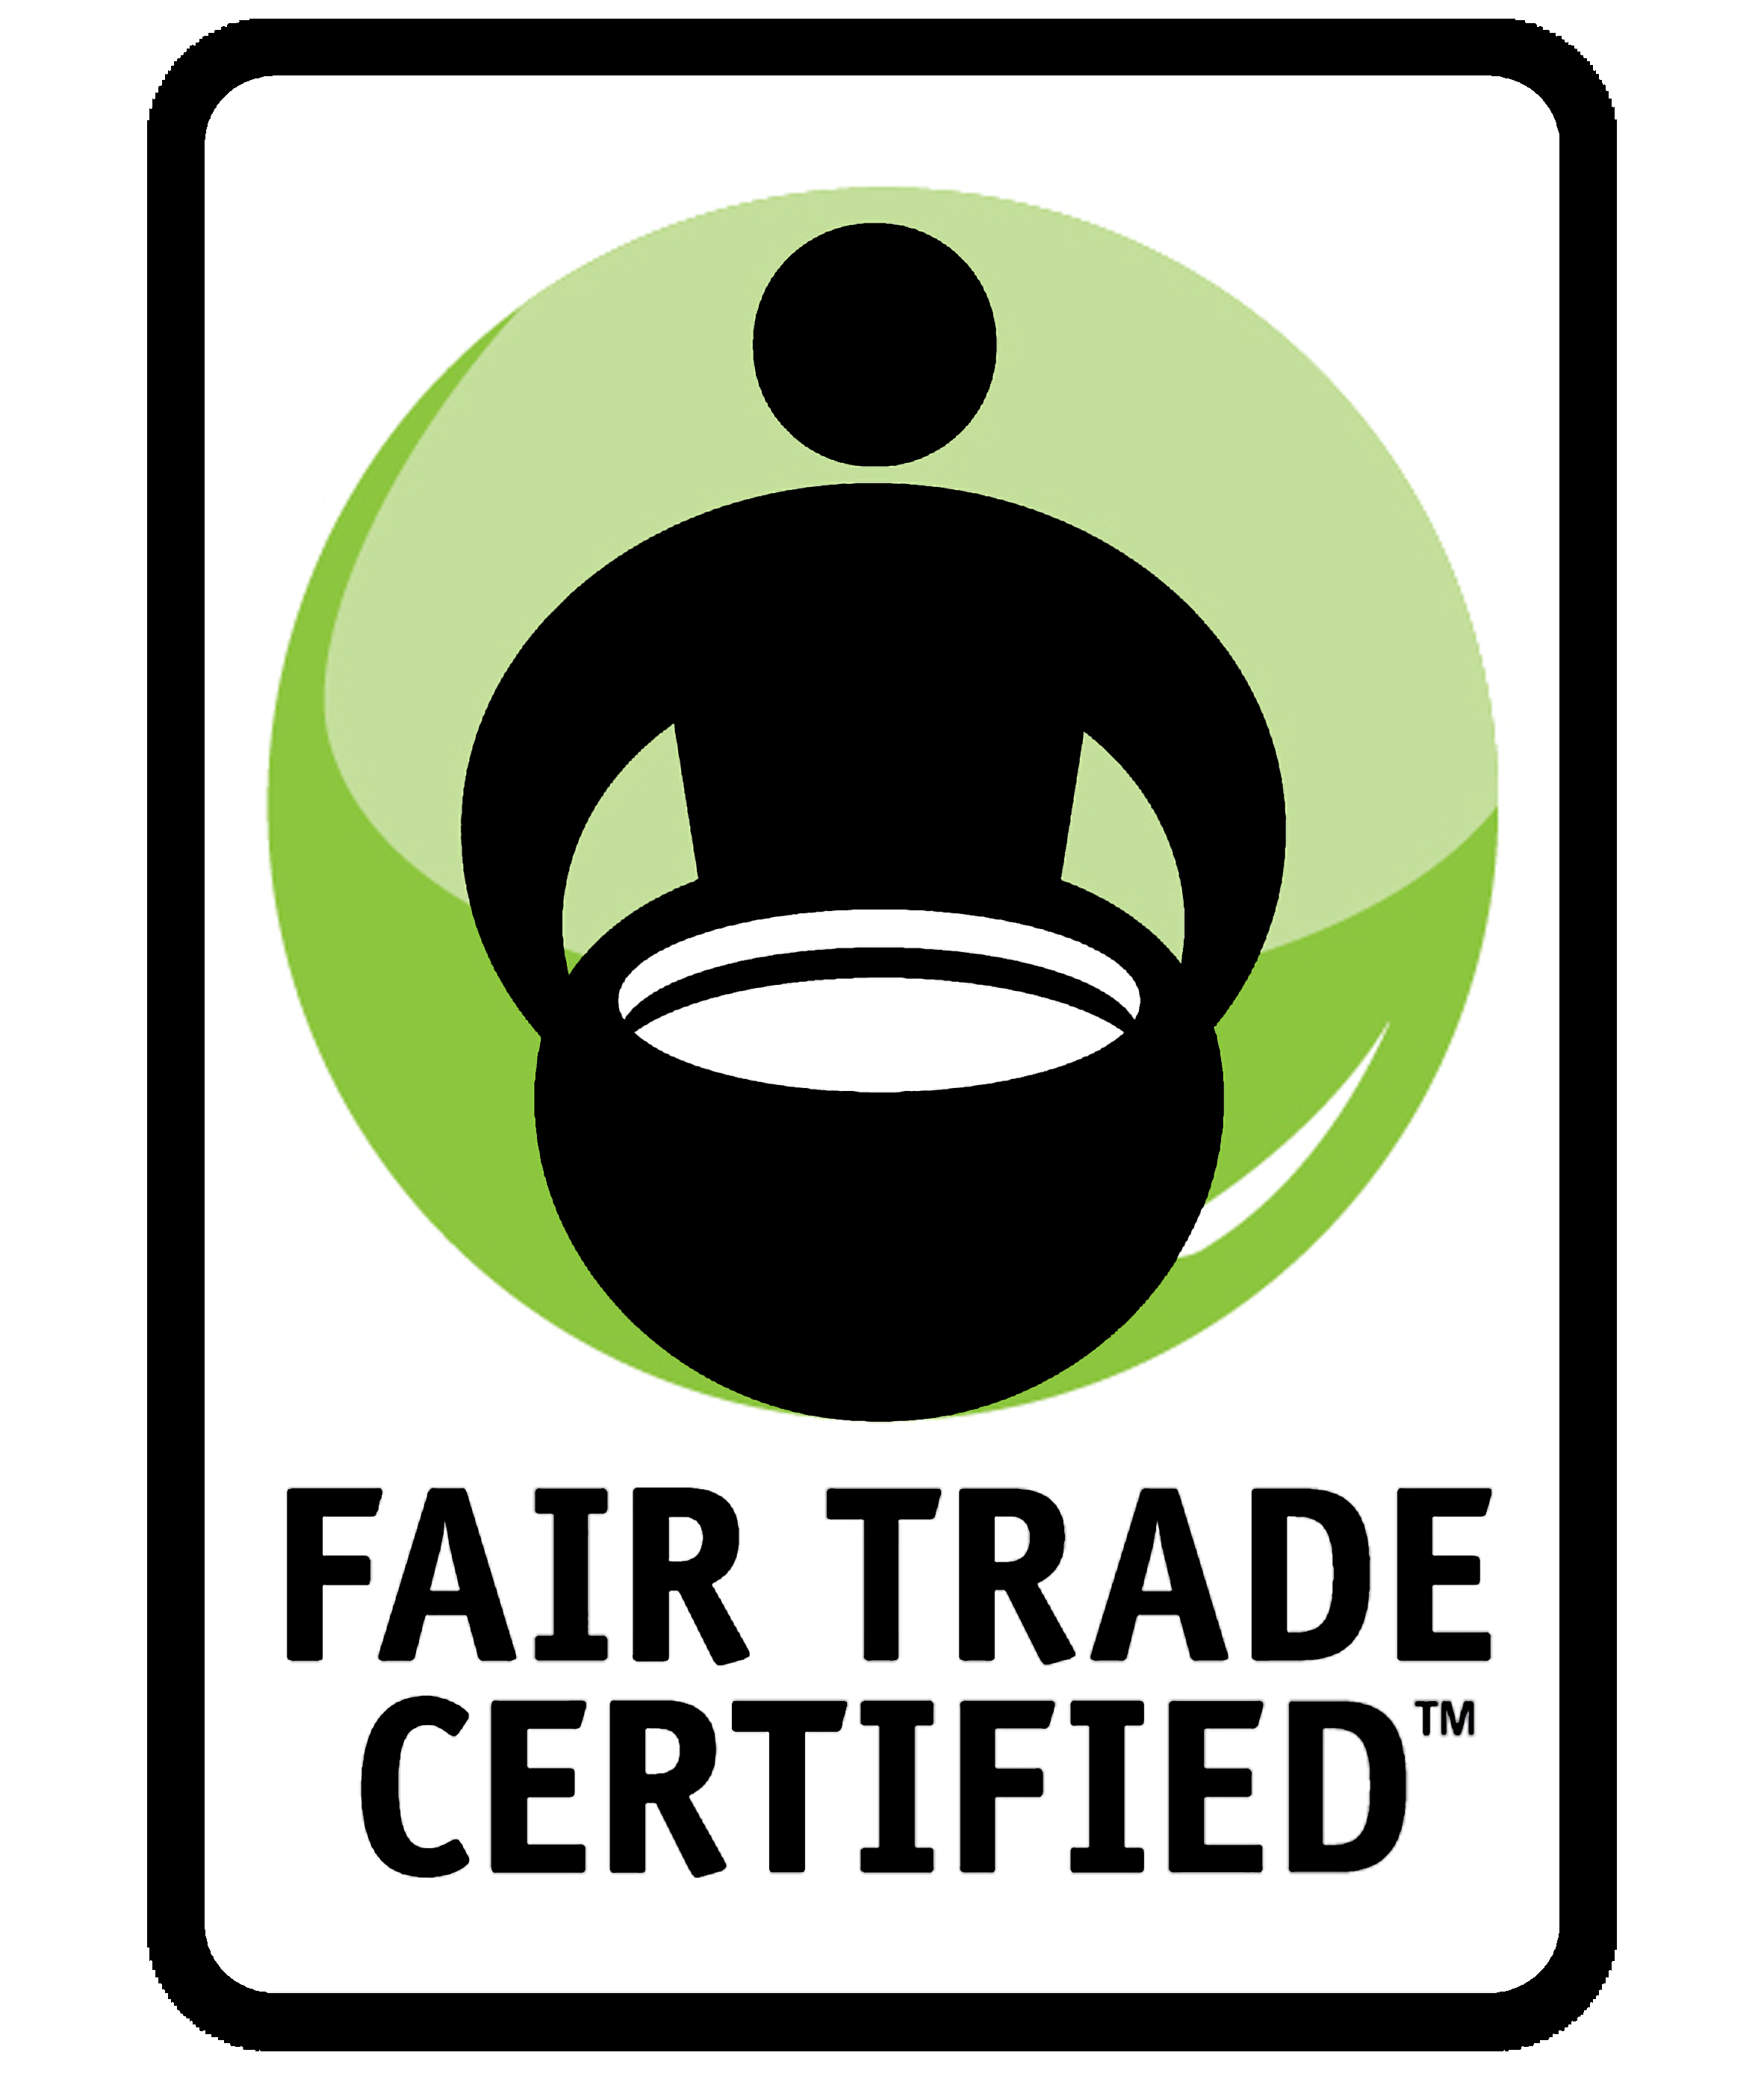 fairtrade-certification-